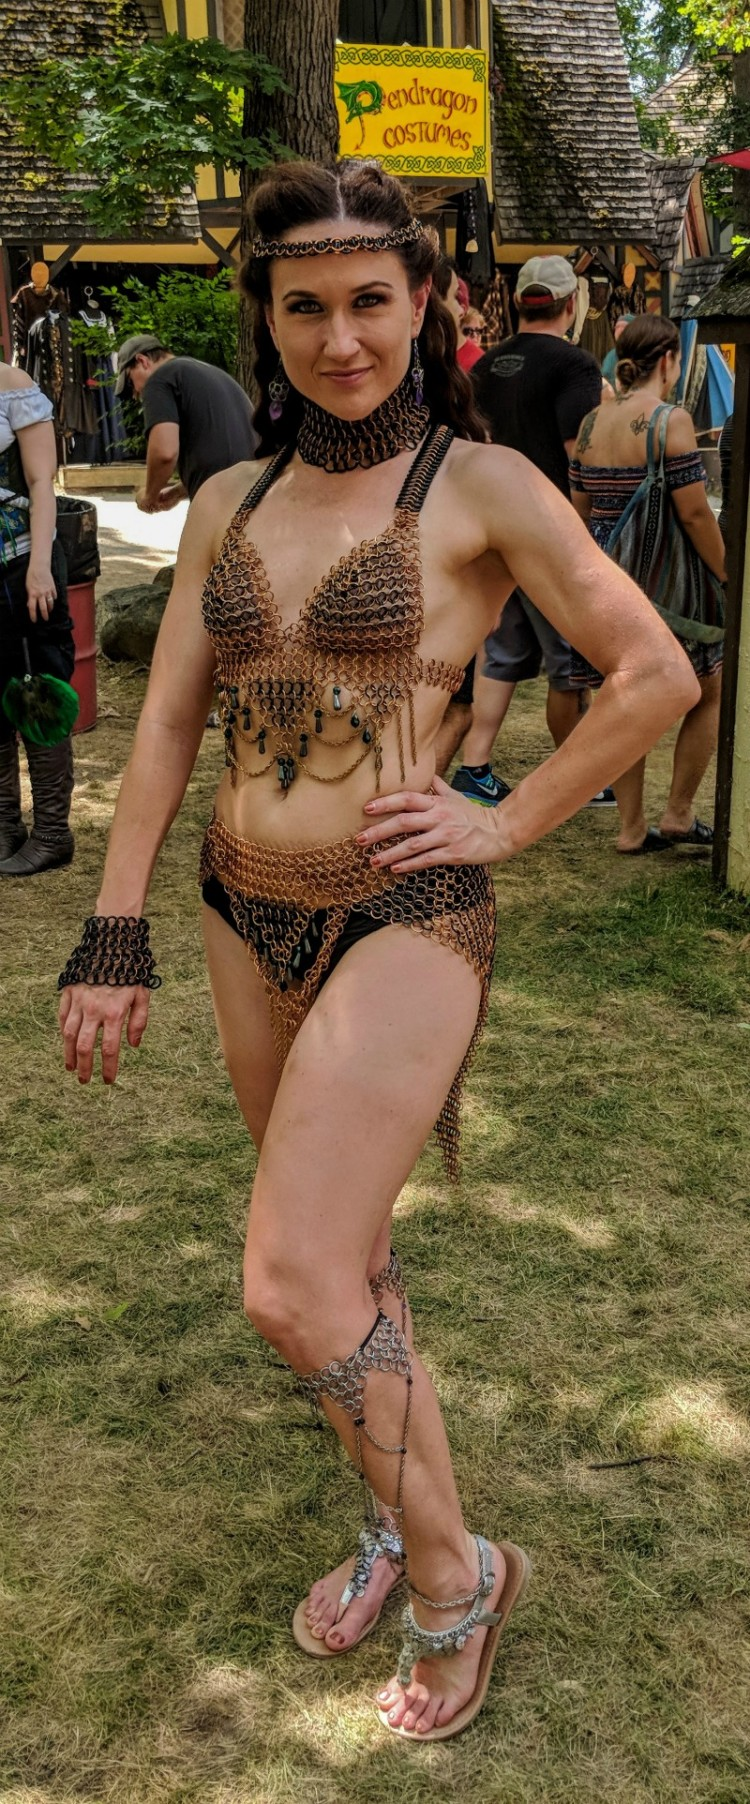 Chain mail is appropriate period costume wear at Bristol Renaissance Faire.